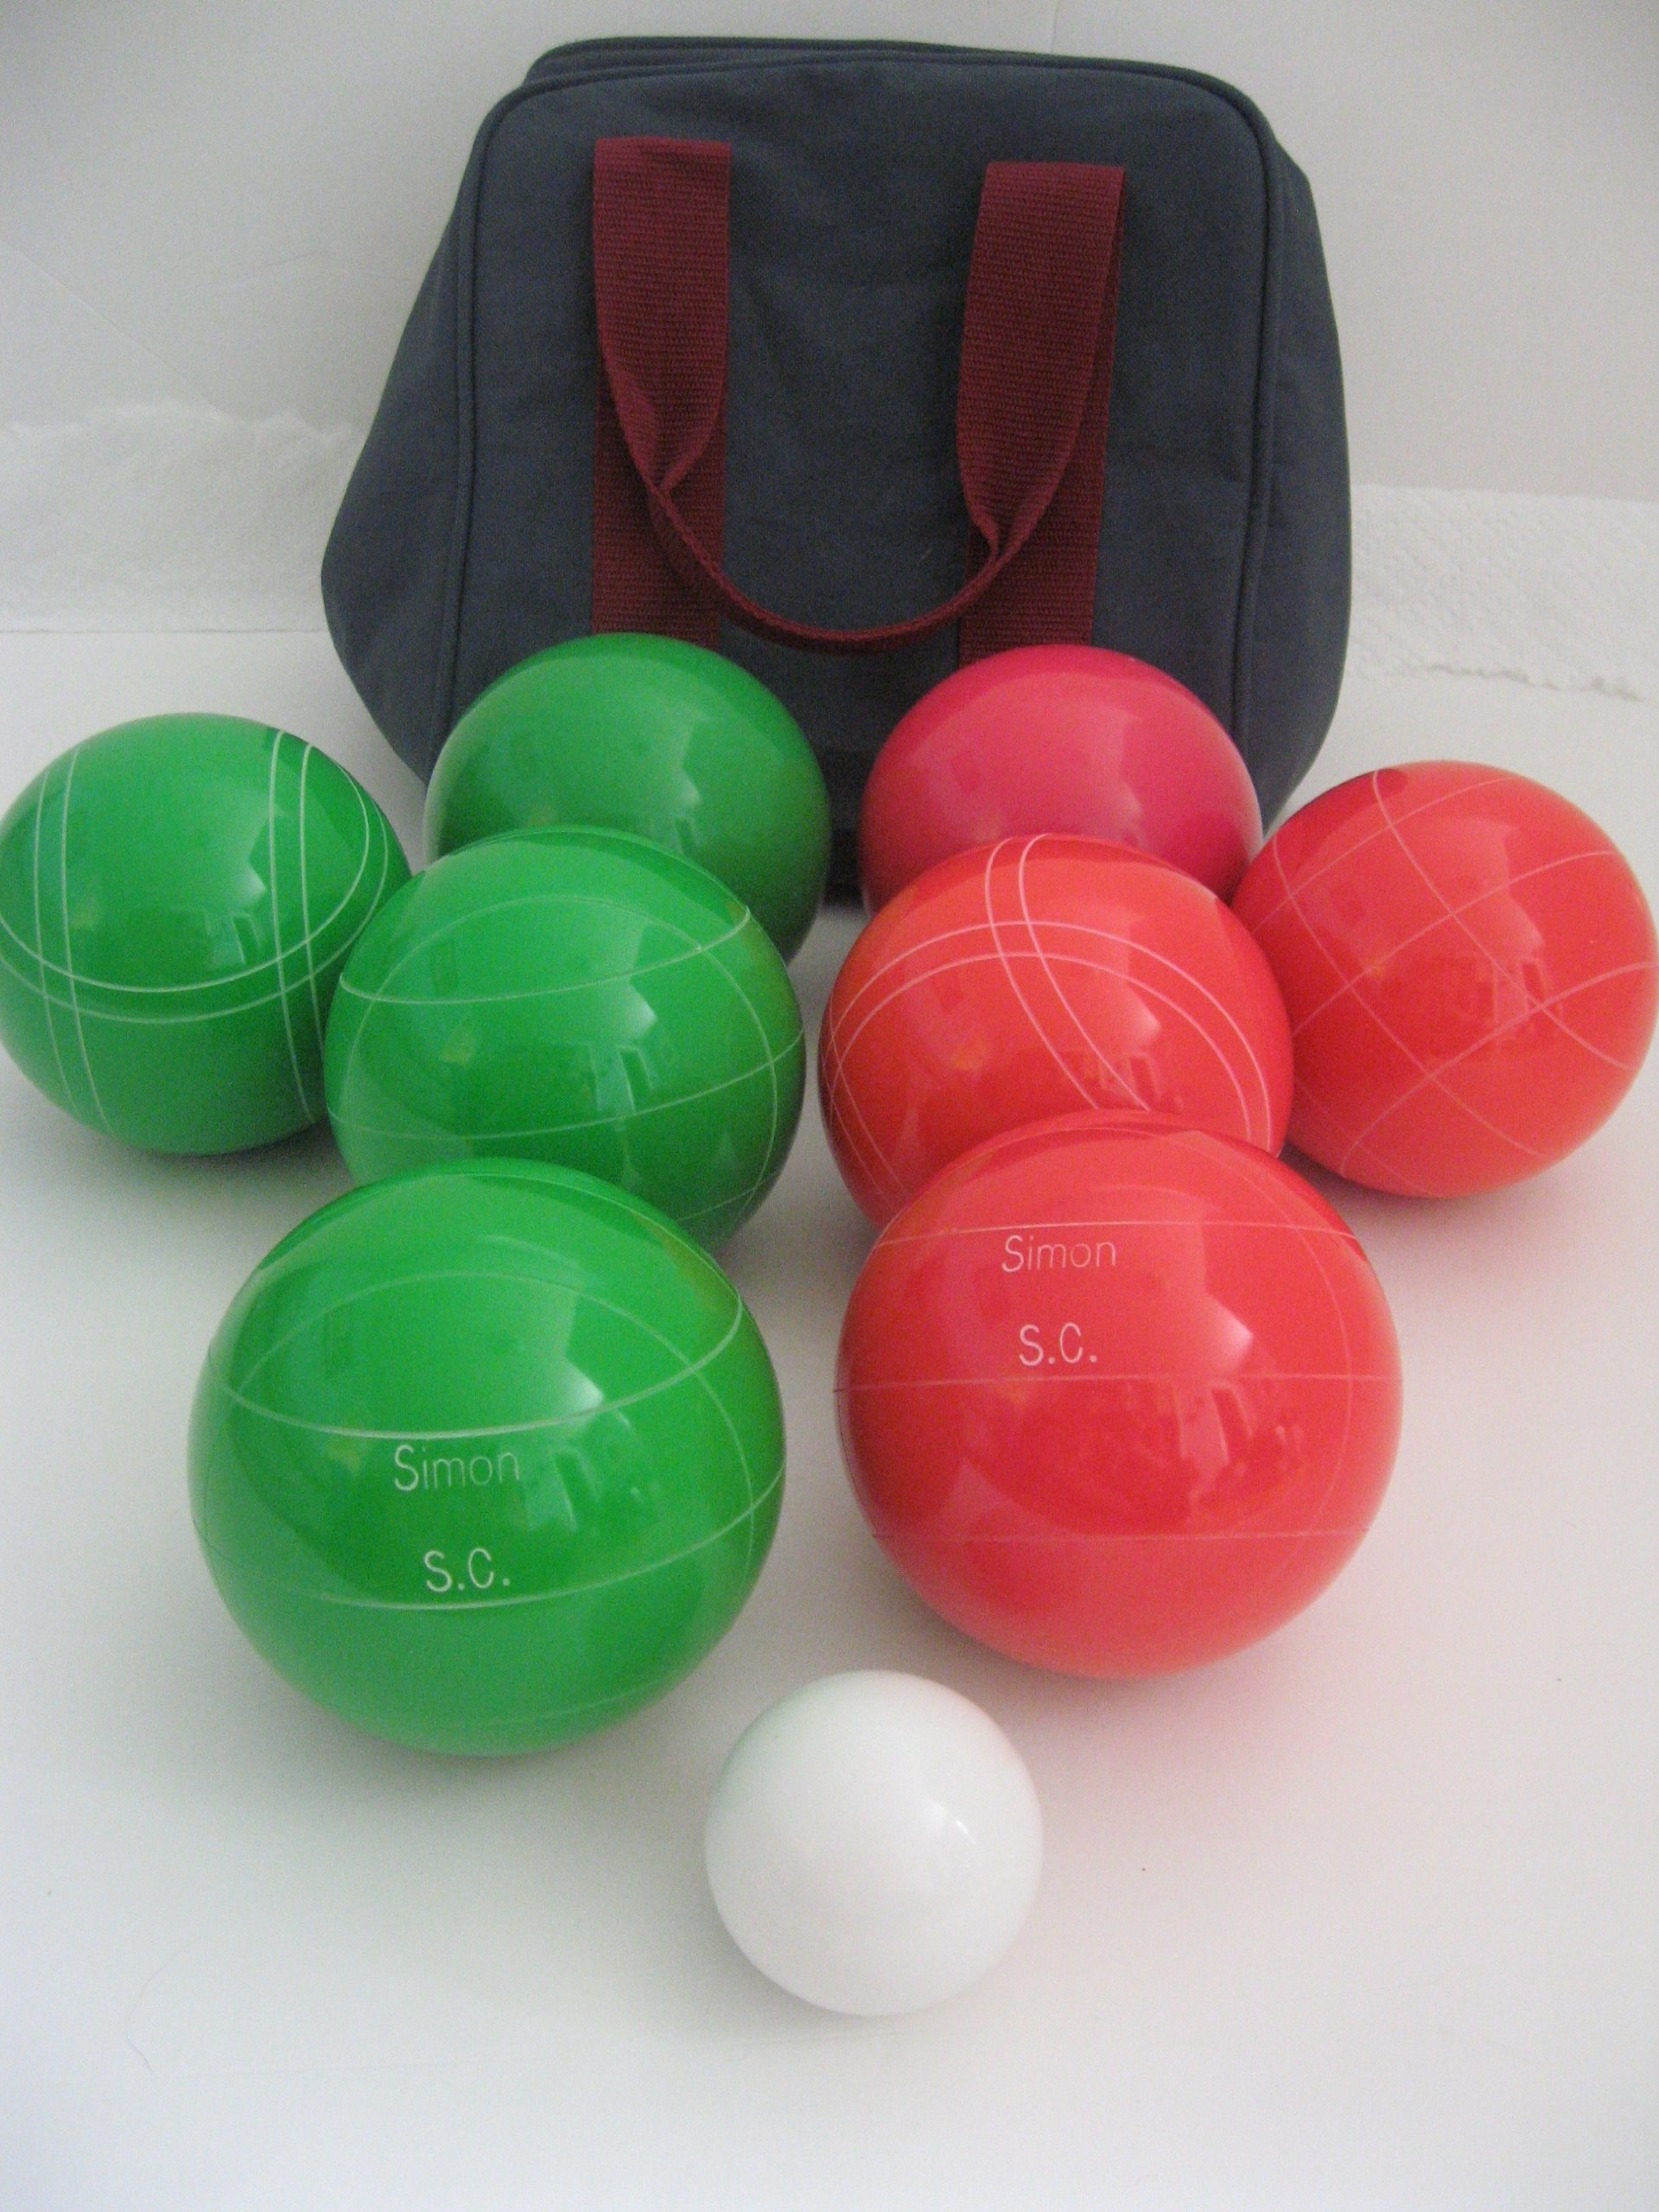 Premium Quality Engraved Bocce Package - 110mm Epco Green and Light Red Balls with Engraving